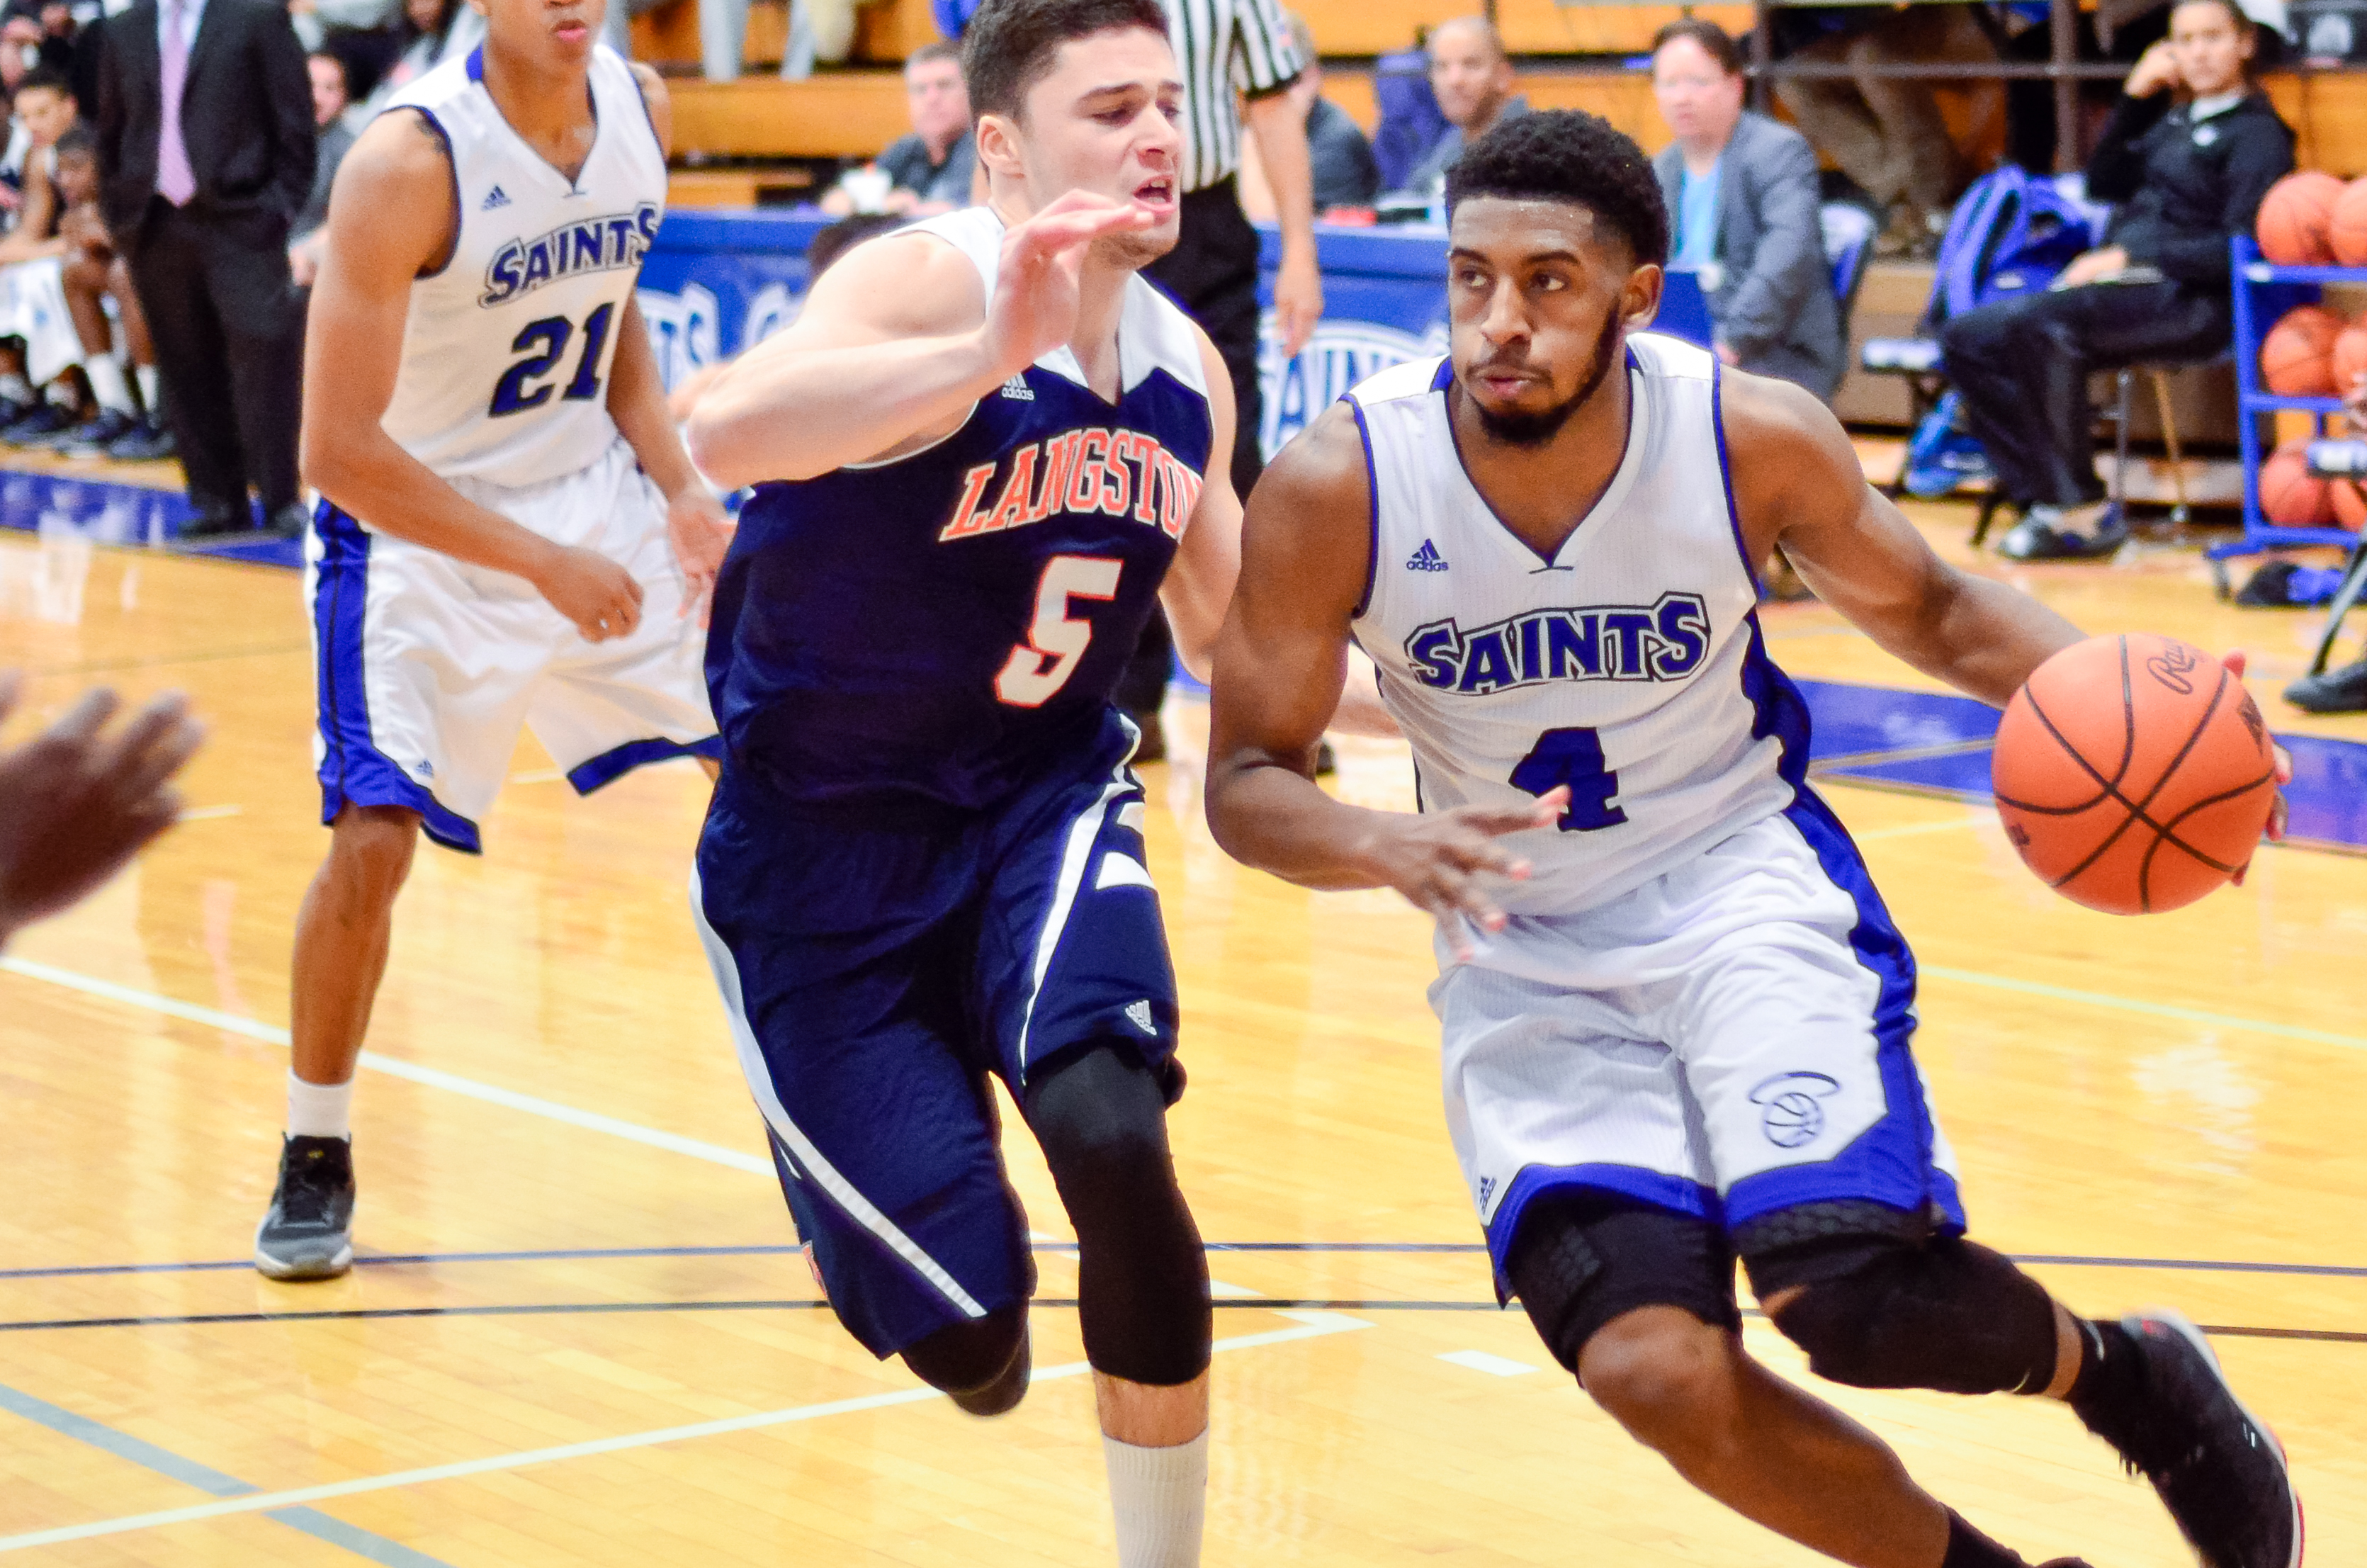 Our Lady of the Lake University Men's Basketball – OLLU